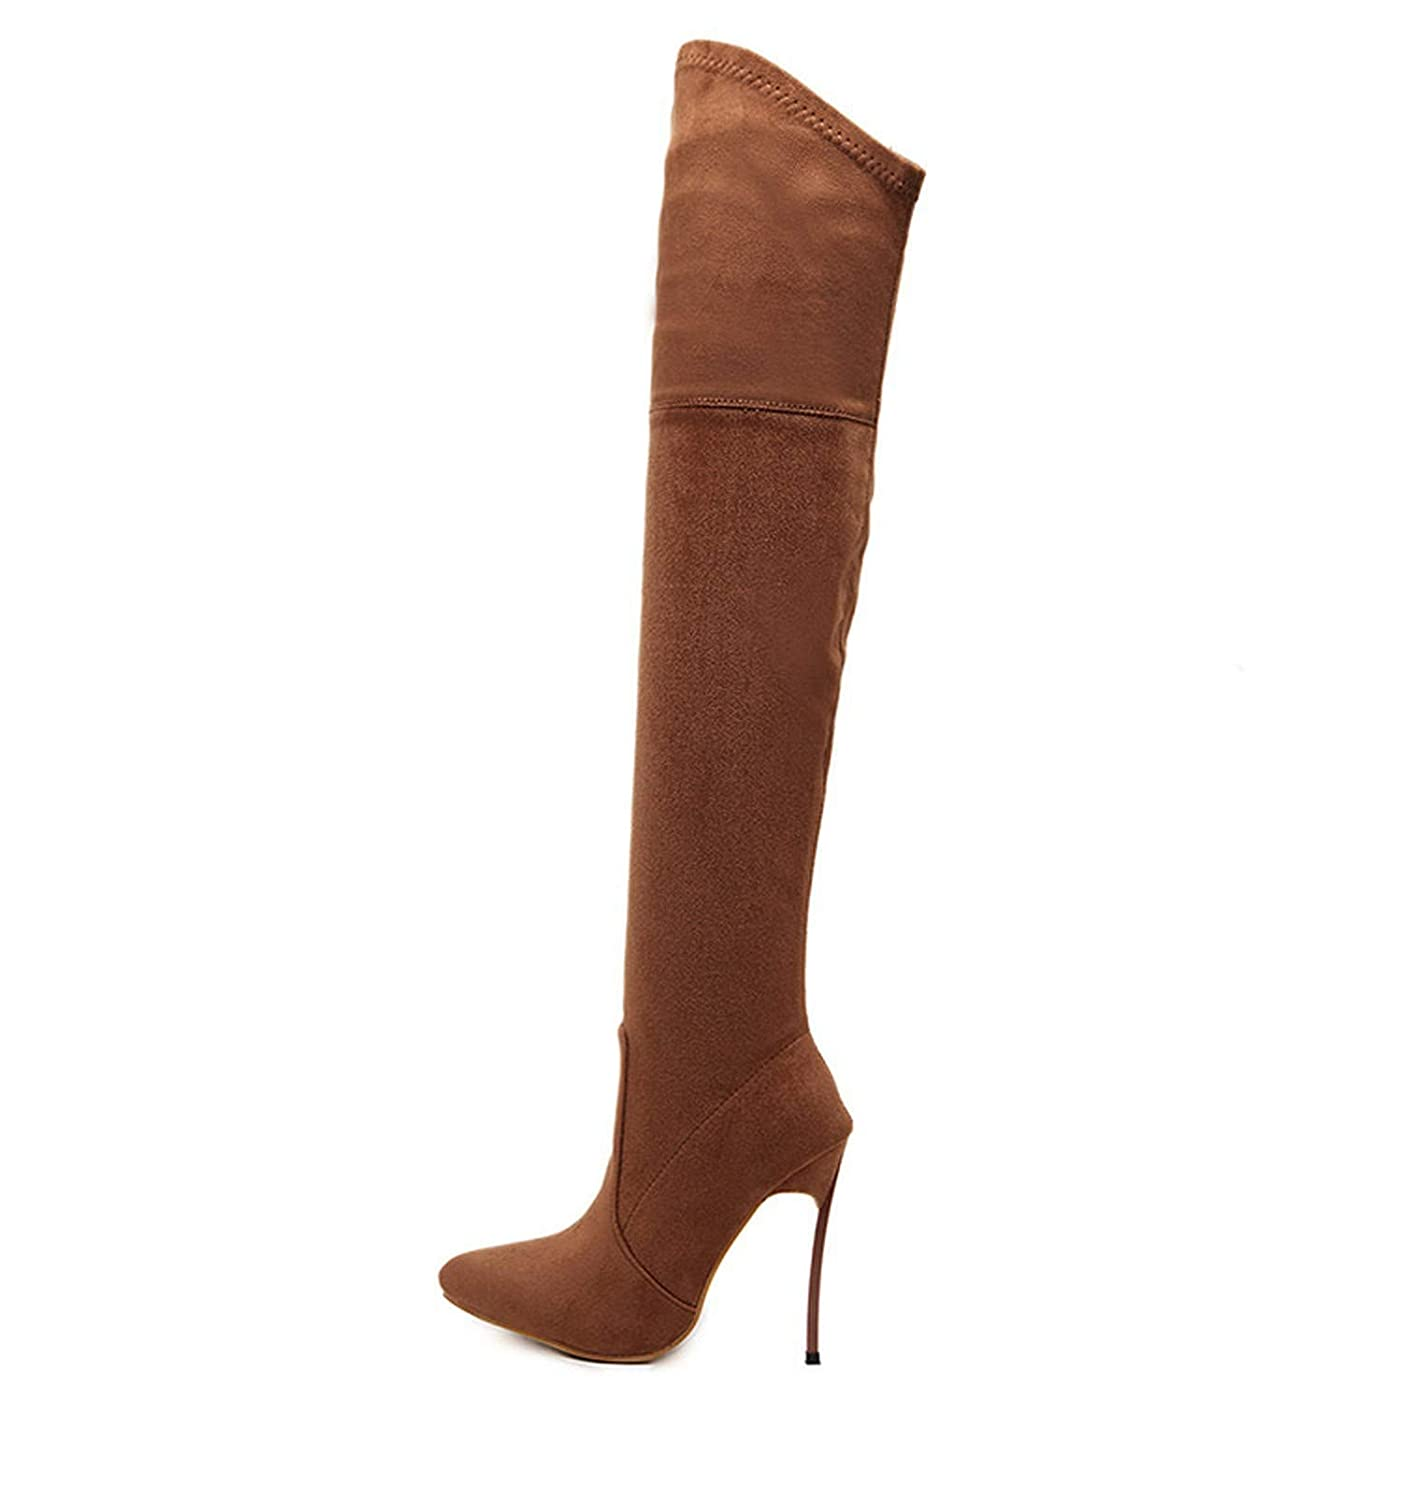 Autumn Winter Women Boots Stretch Slim Thigh High Boots Fashion Over The Knee Boots High Heels Shoes